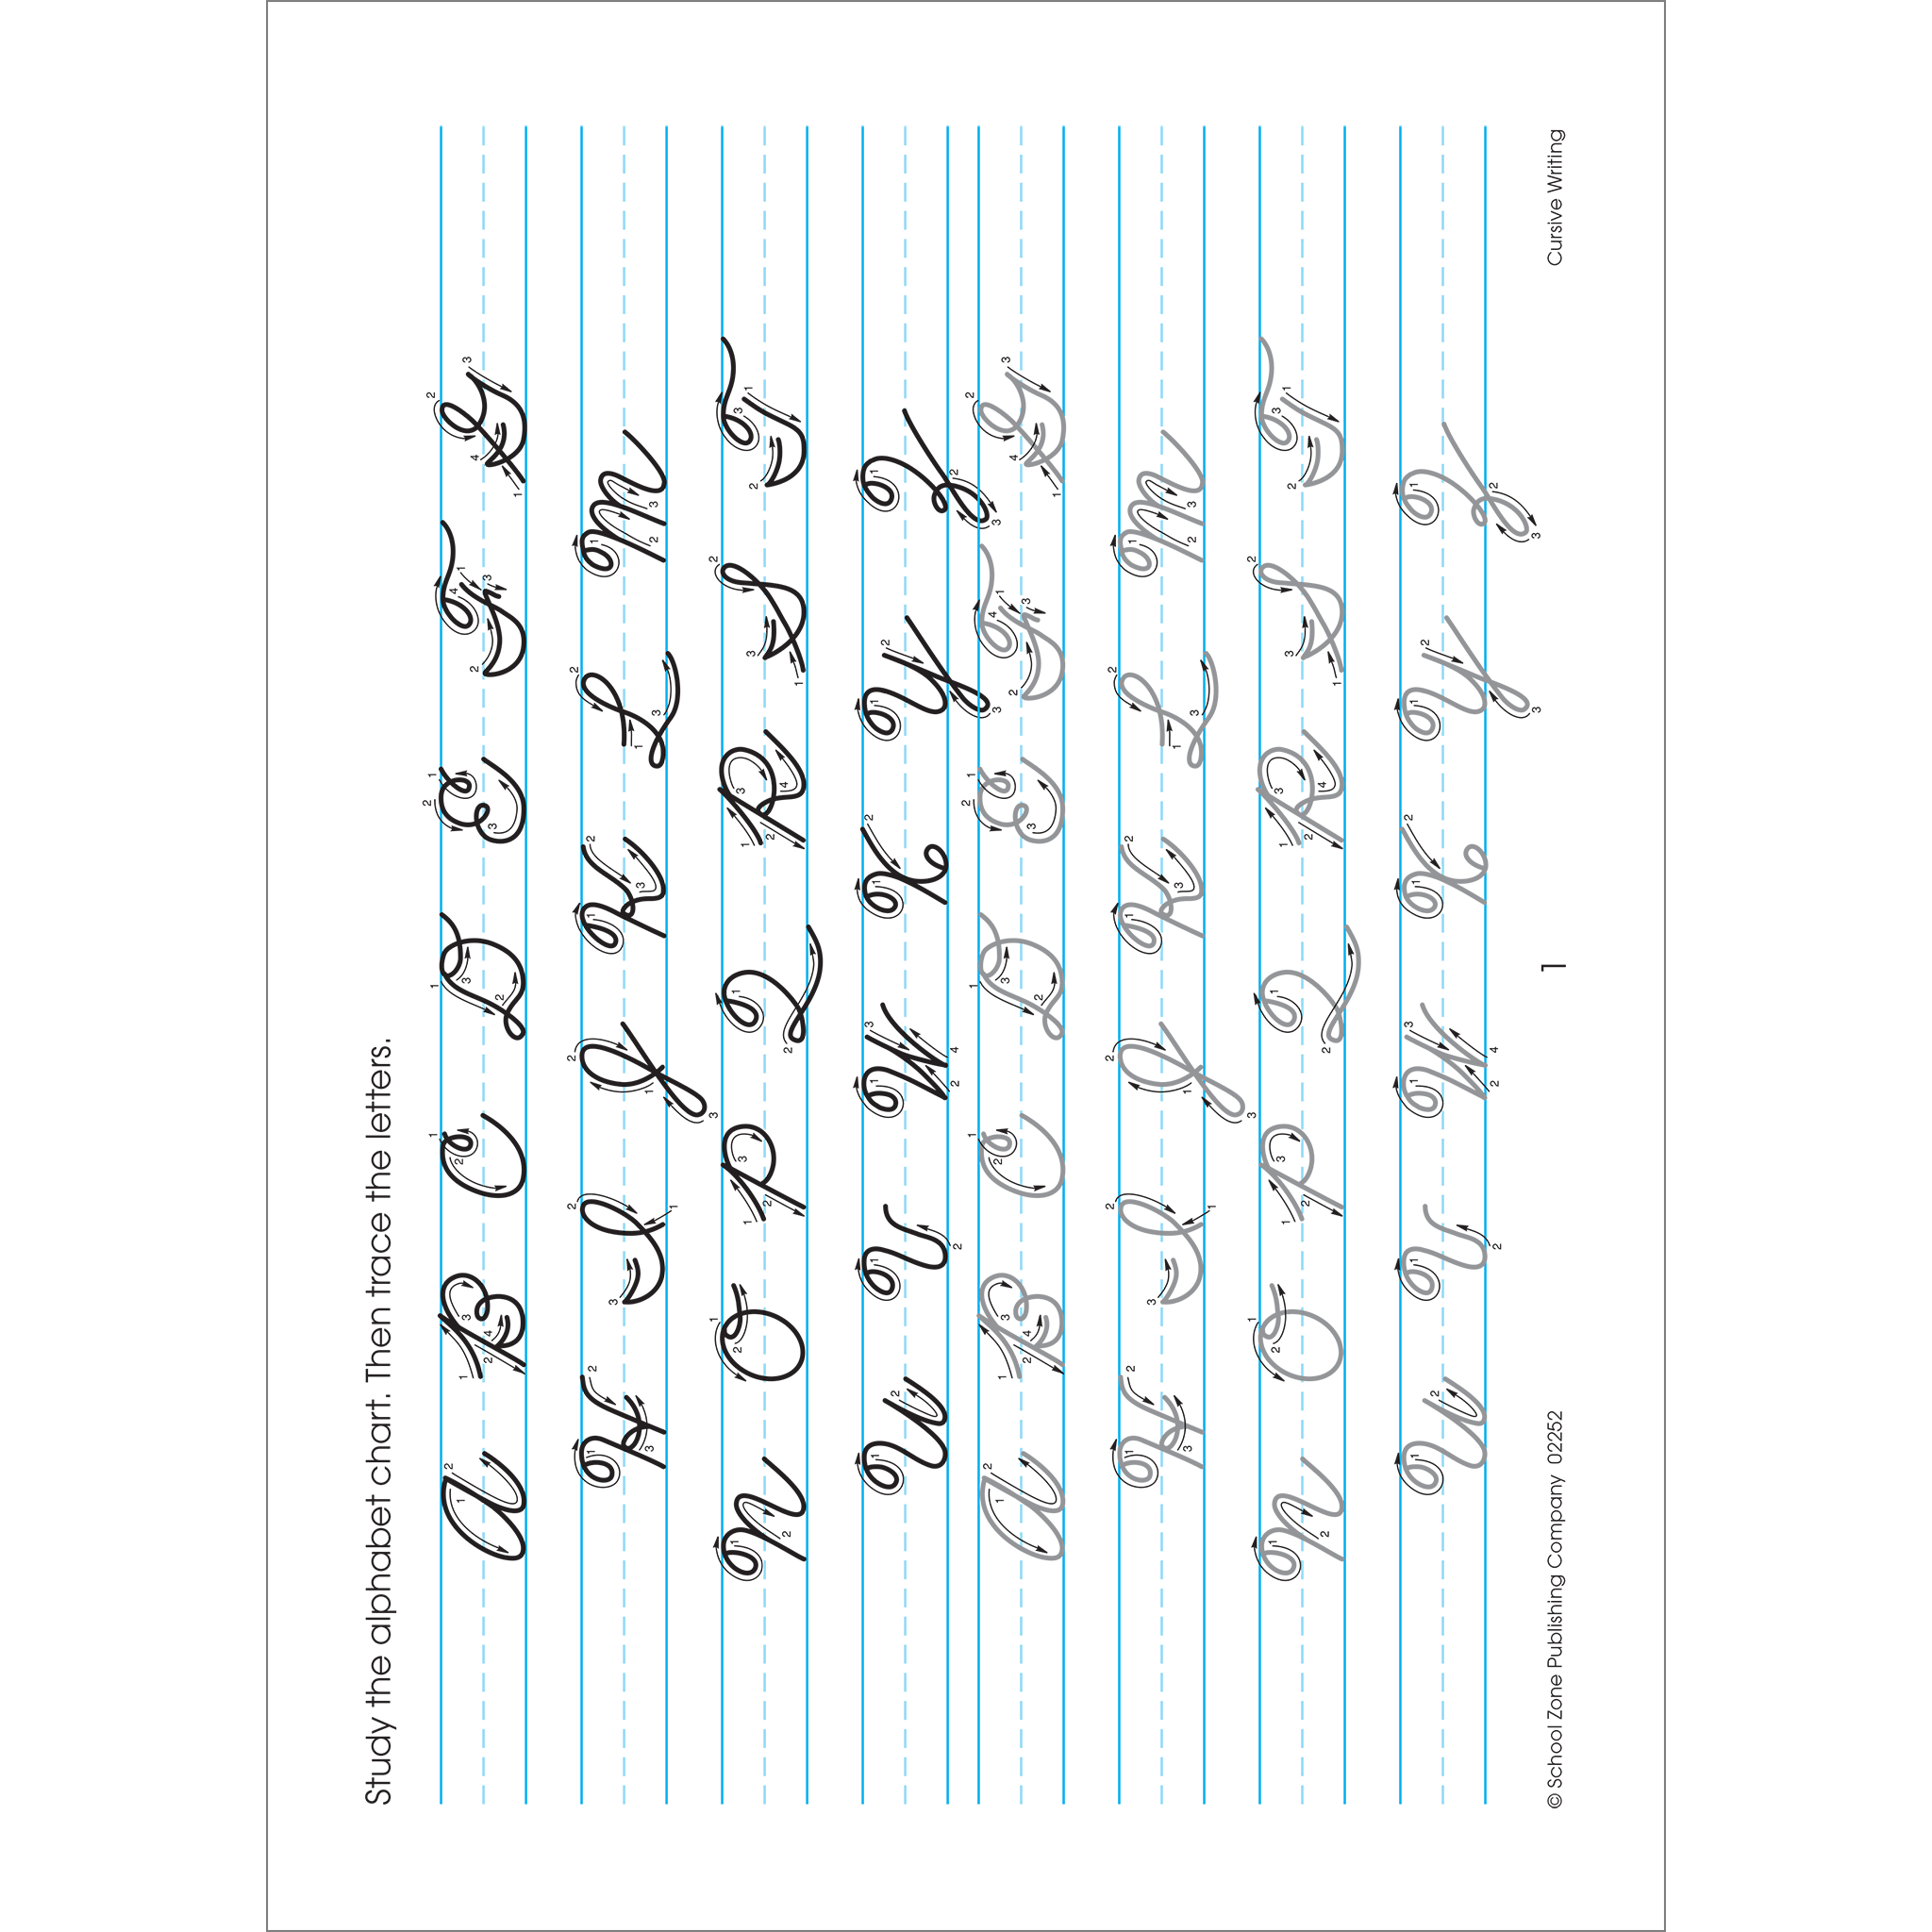 Cursive deluxe edition workbook. Handwriting clipart writing material